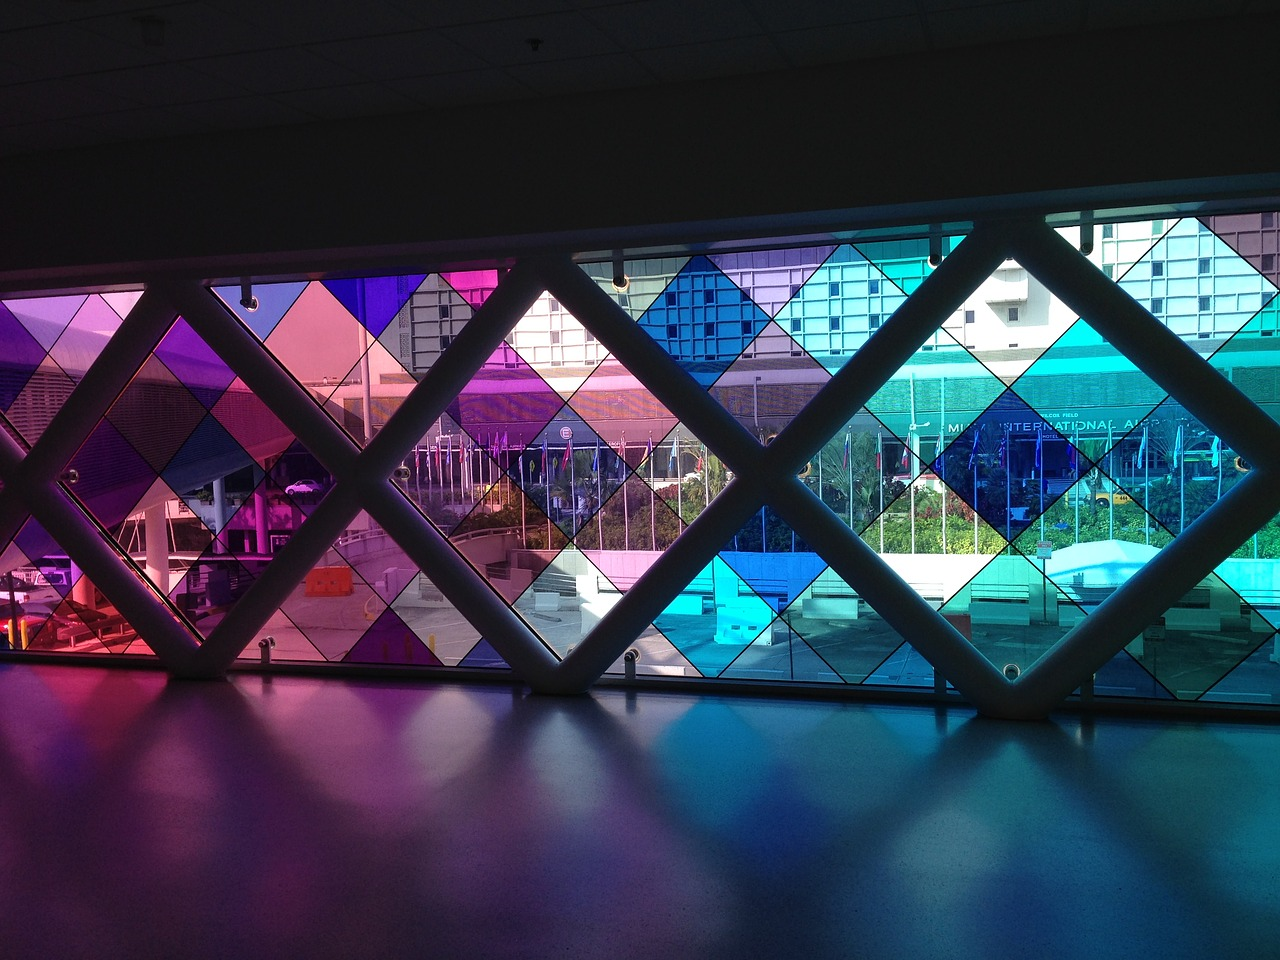 Photo of the stained glass at the Miami International Airport